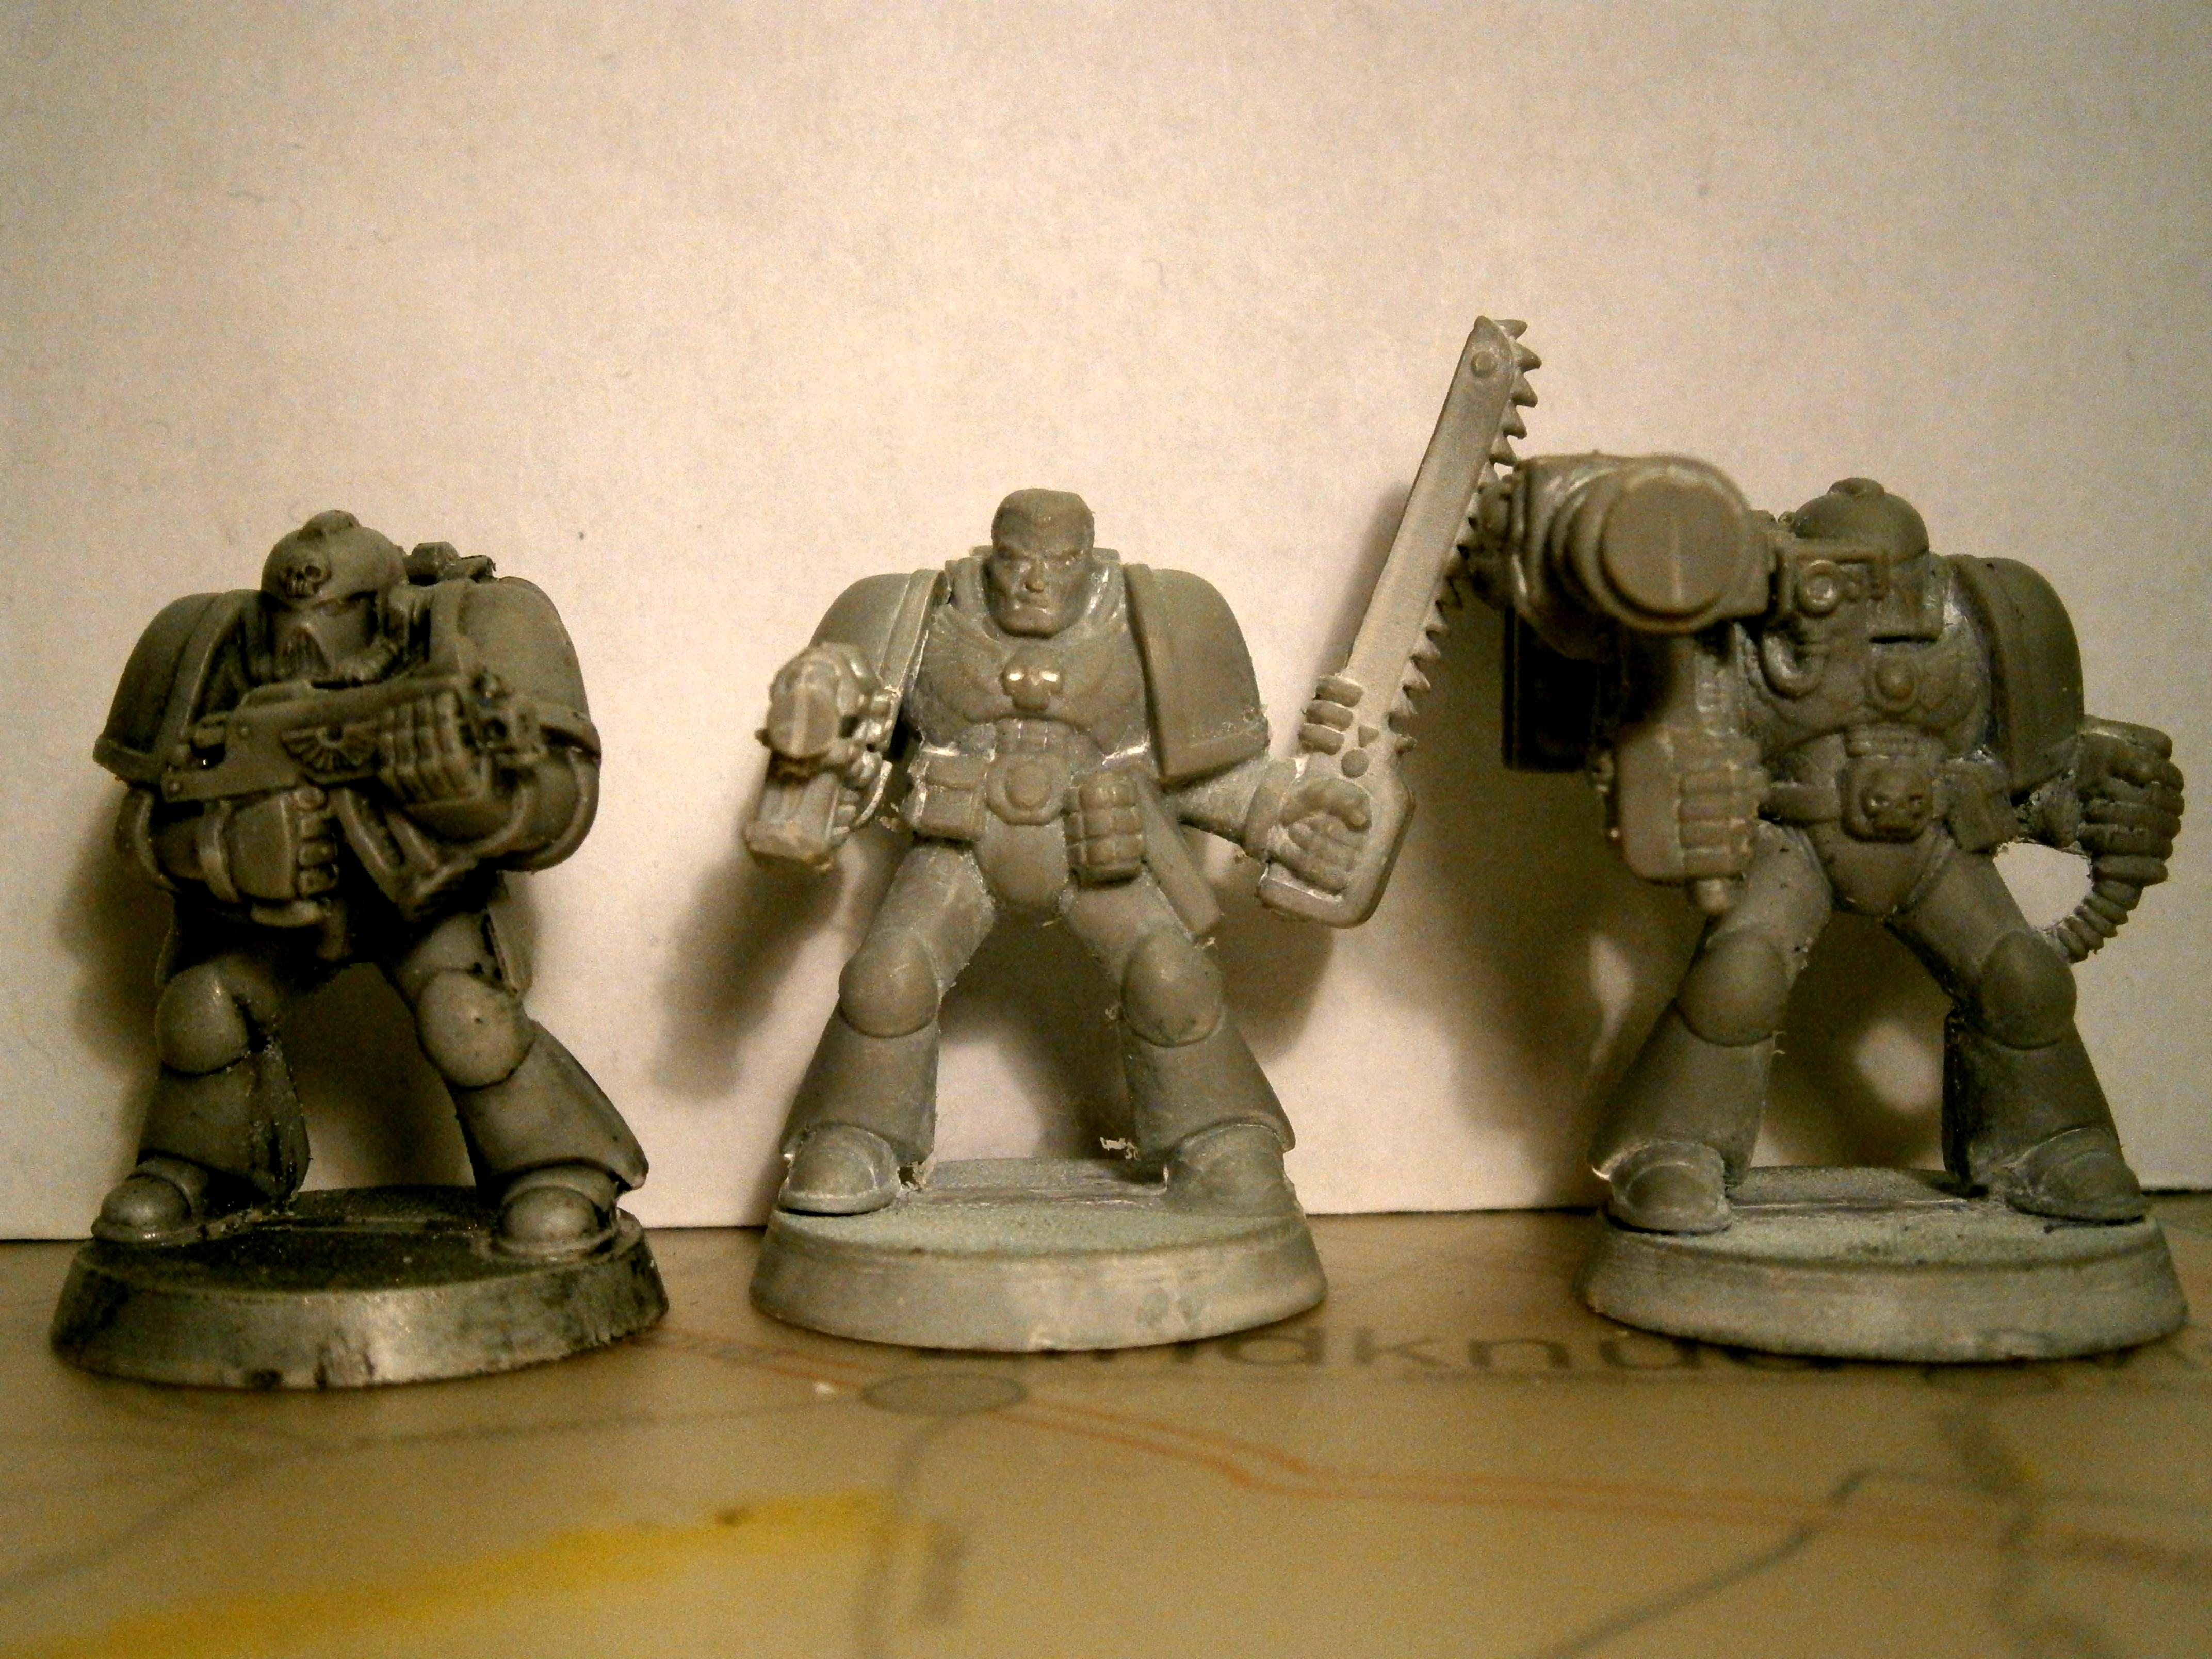 2nd Edition, Monopose, Old Space Marines, Space Marines